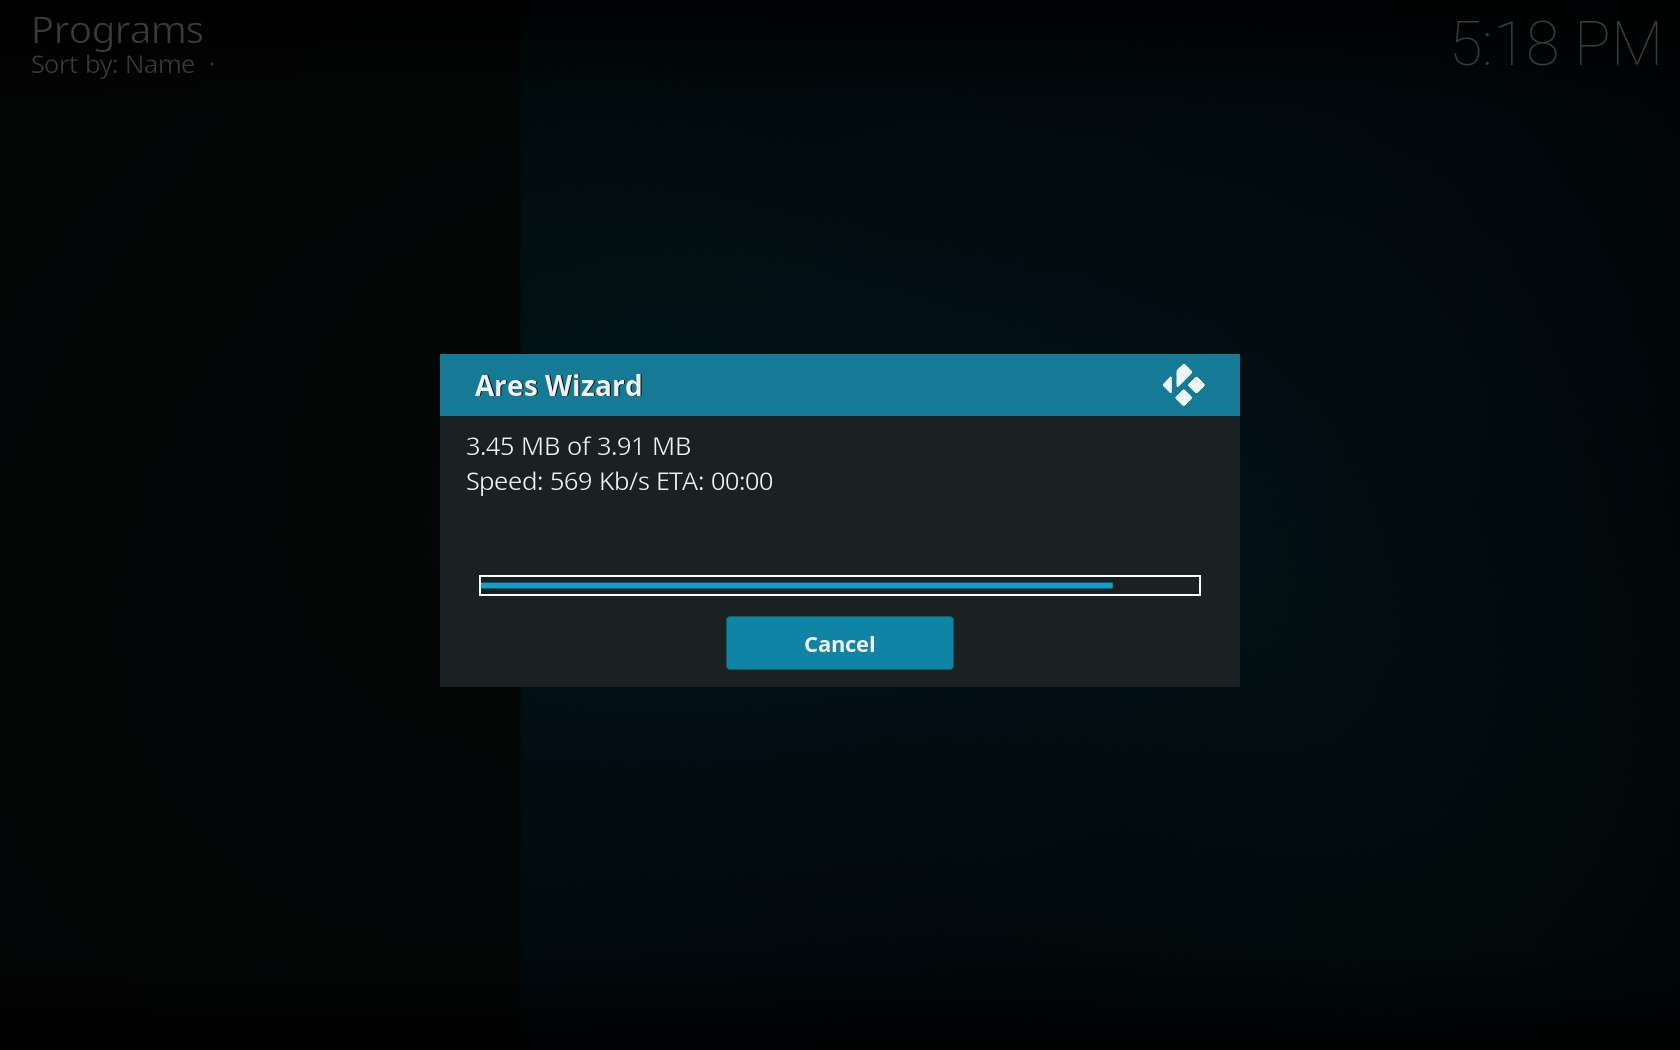 ares wizard free download